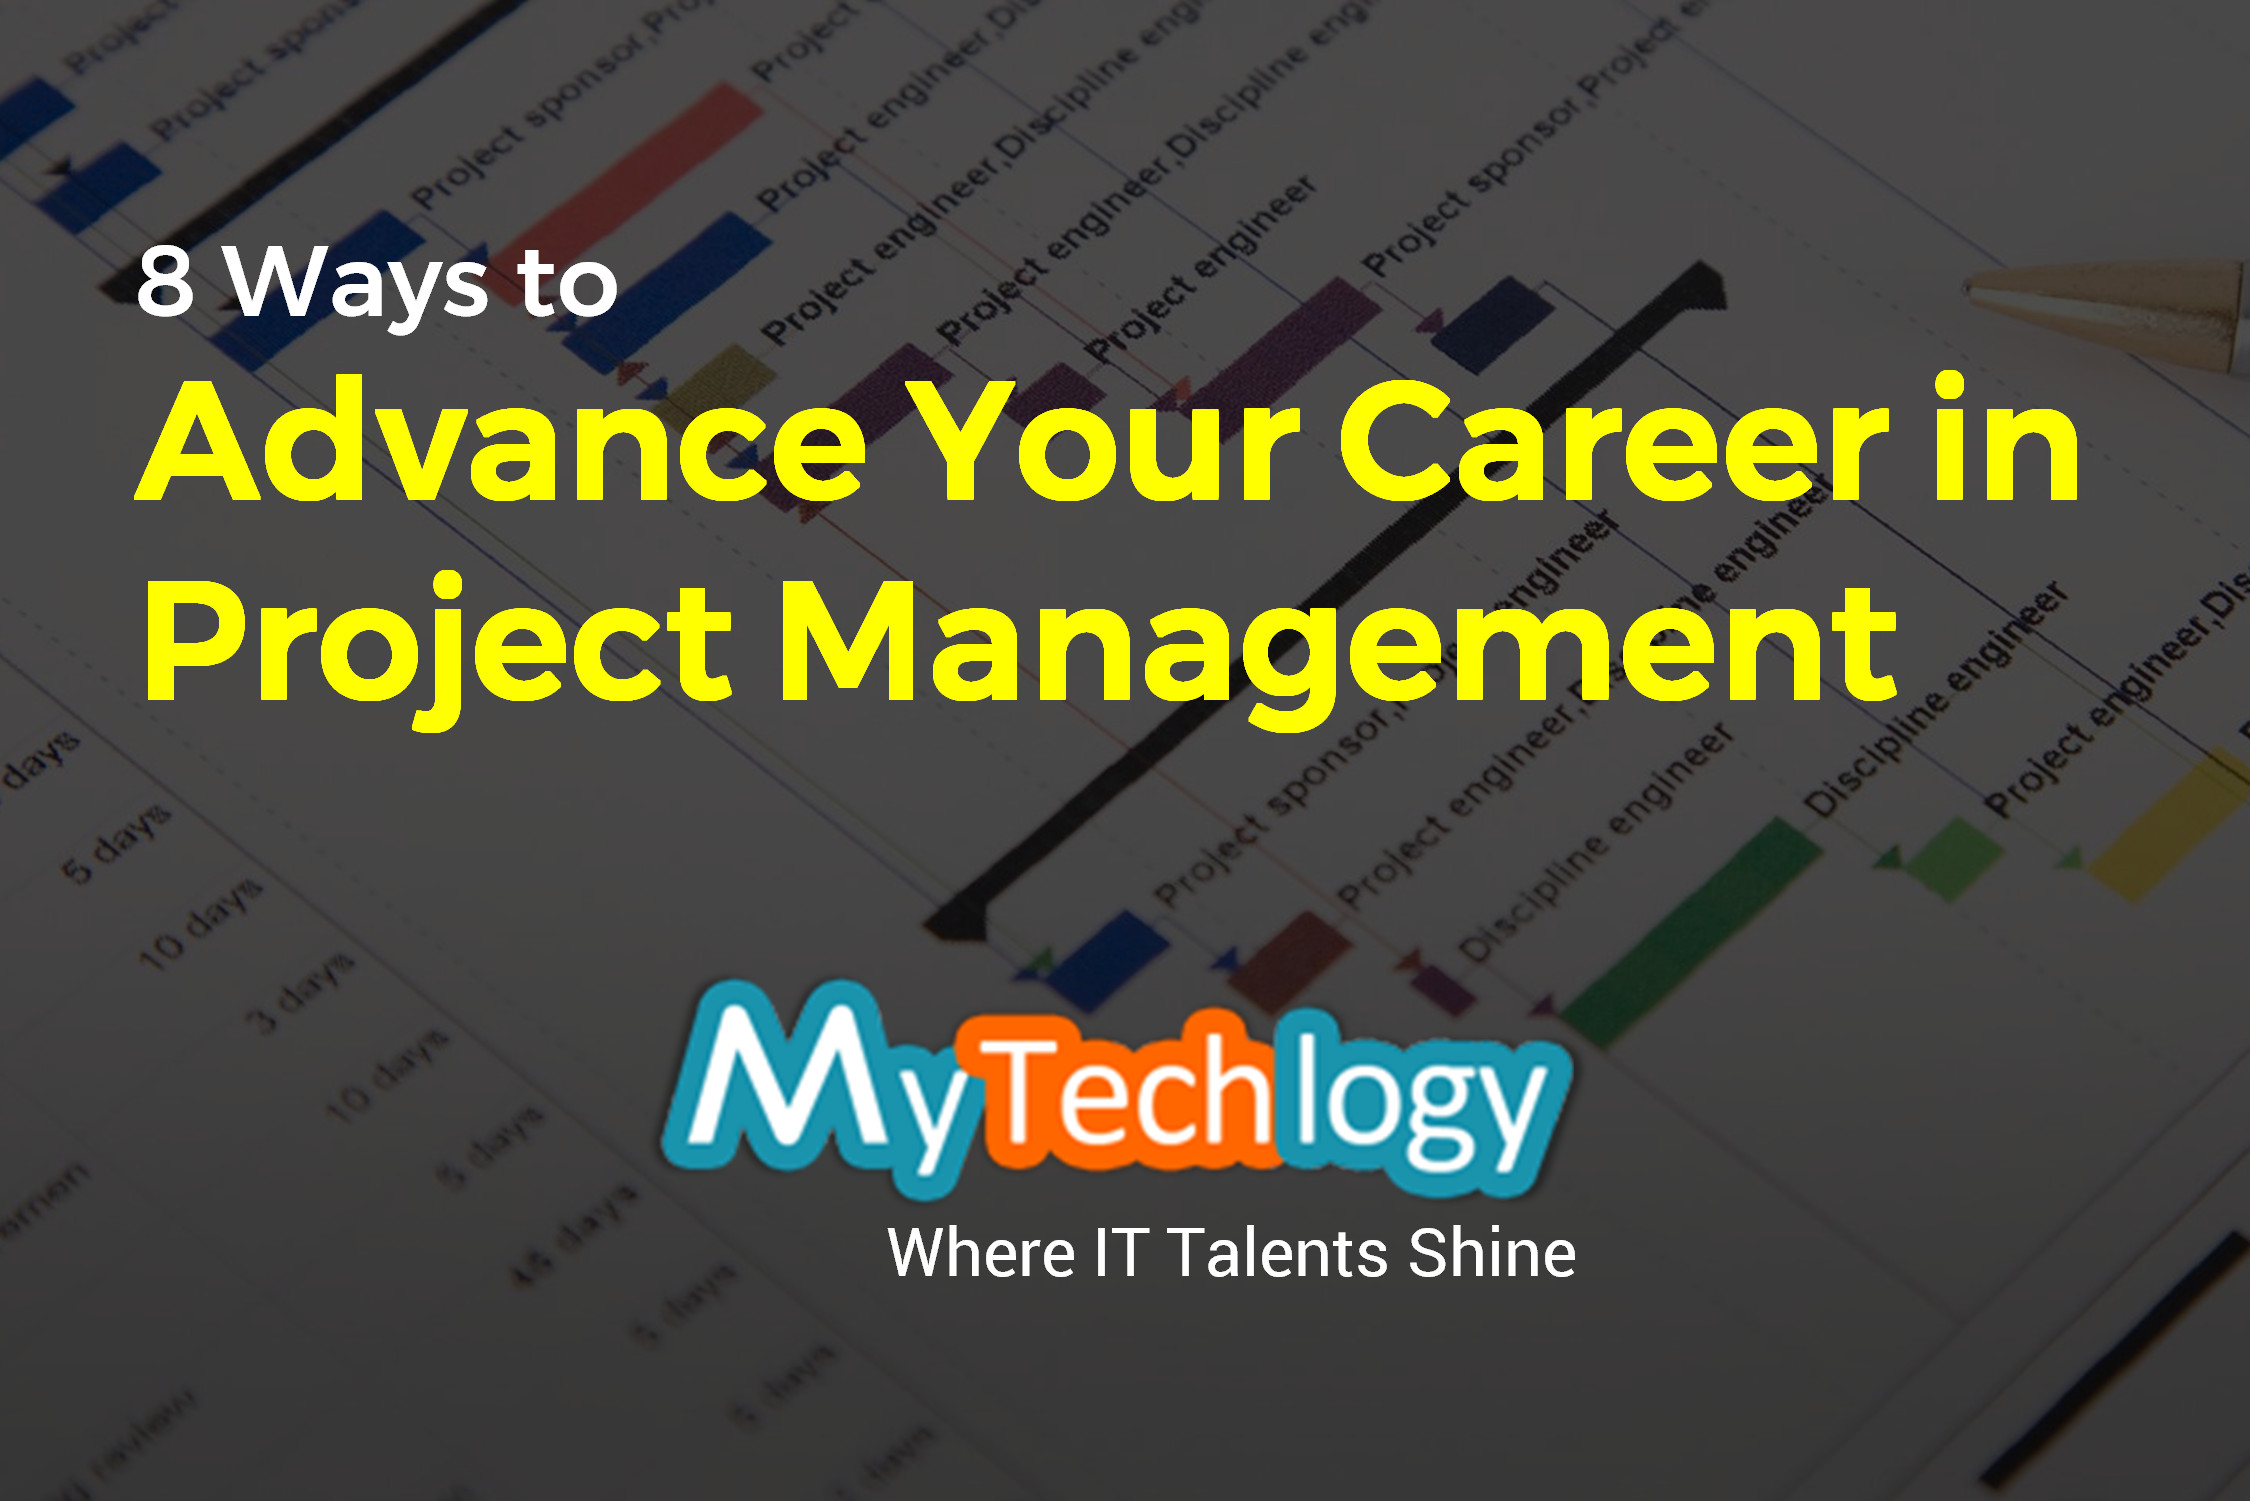 8 Ways to Advance Your Career in Project Management - Image 1